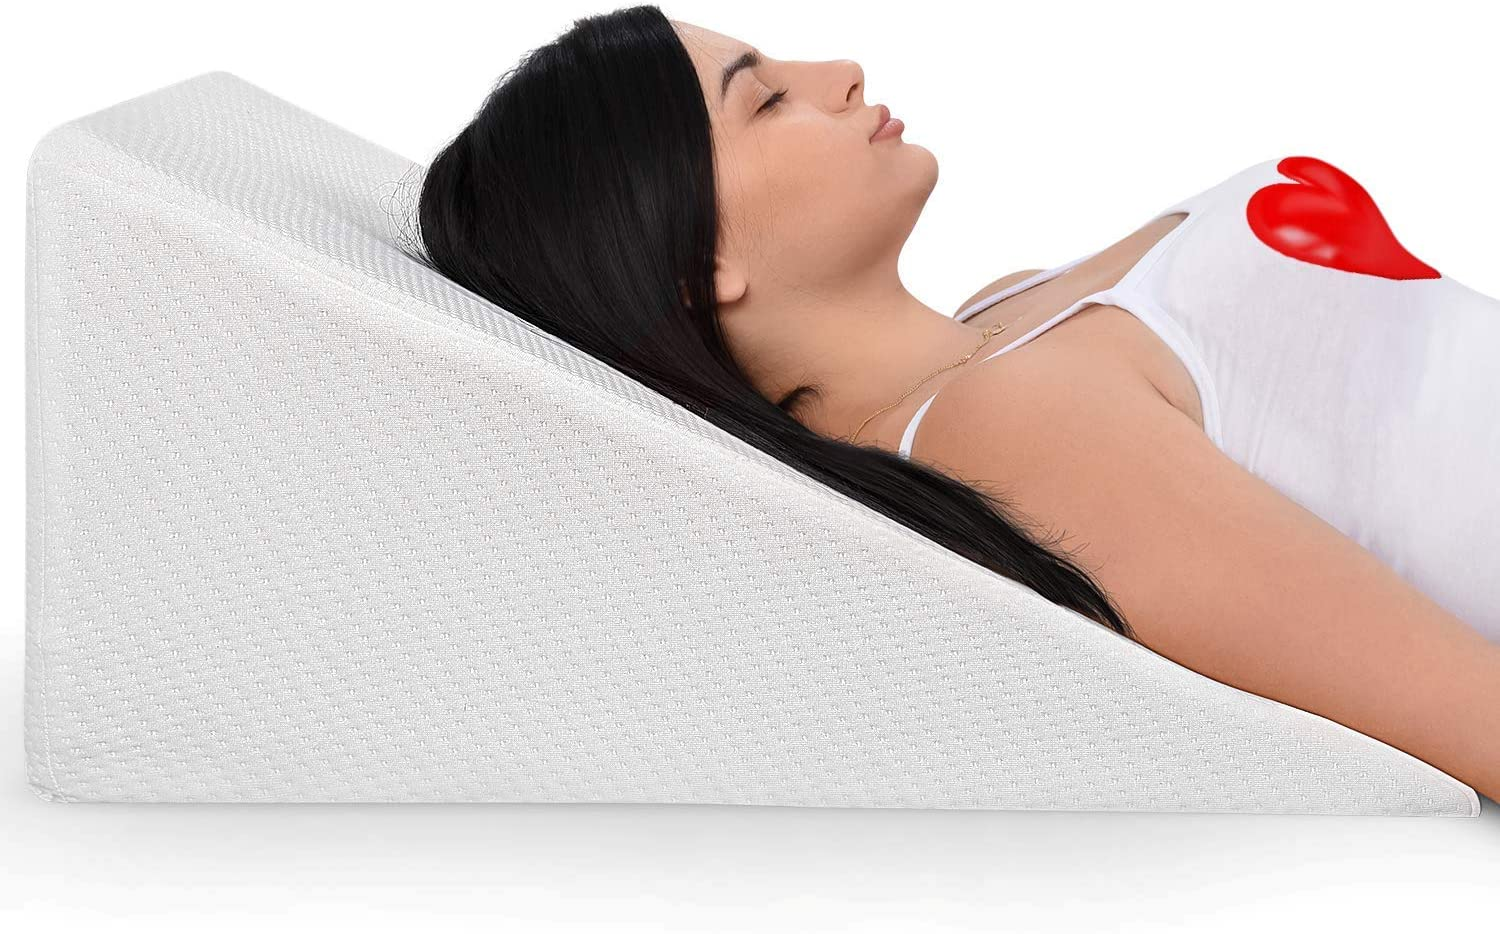 bed wedge pillow with memory foam top ideal for comfortable and restful sleeping alleviates neck and back pain acid reflux snoring heartburn